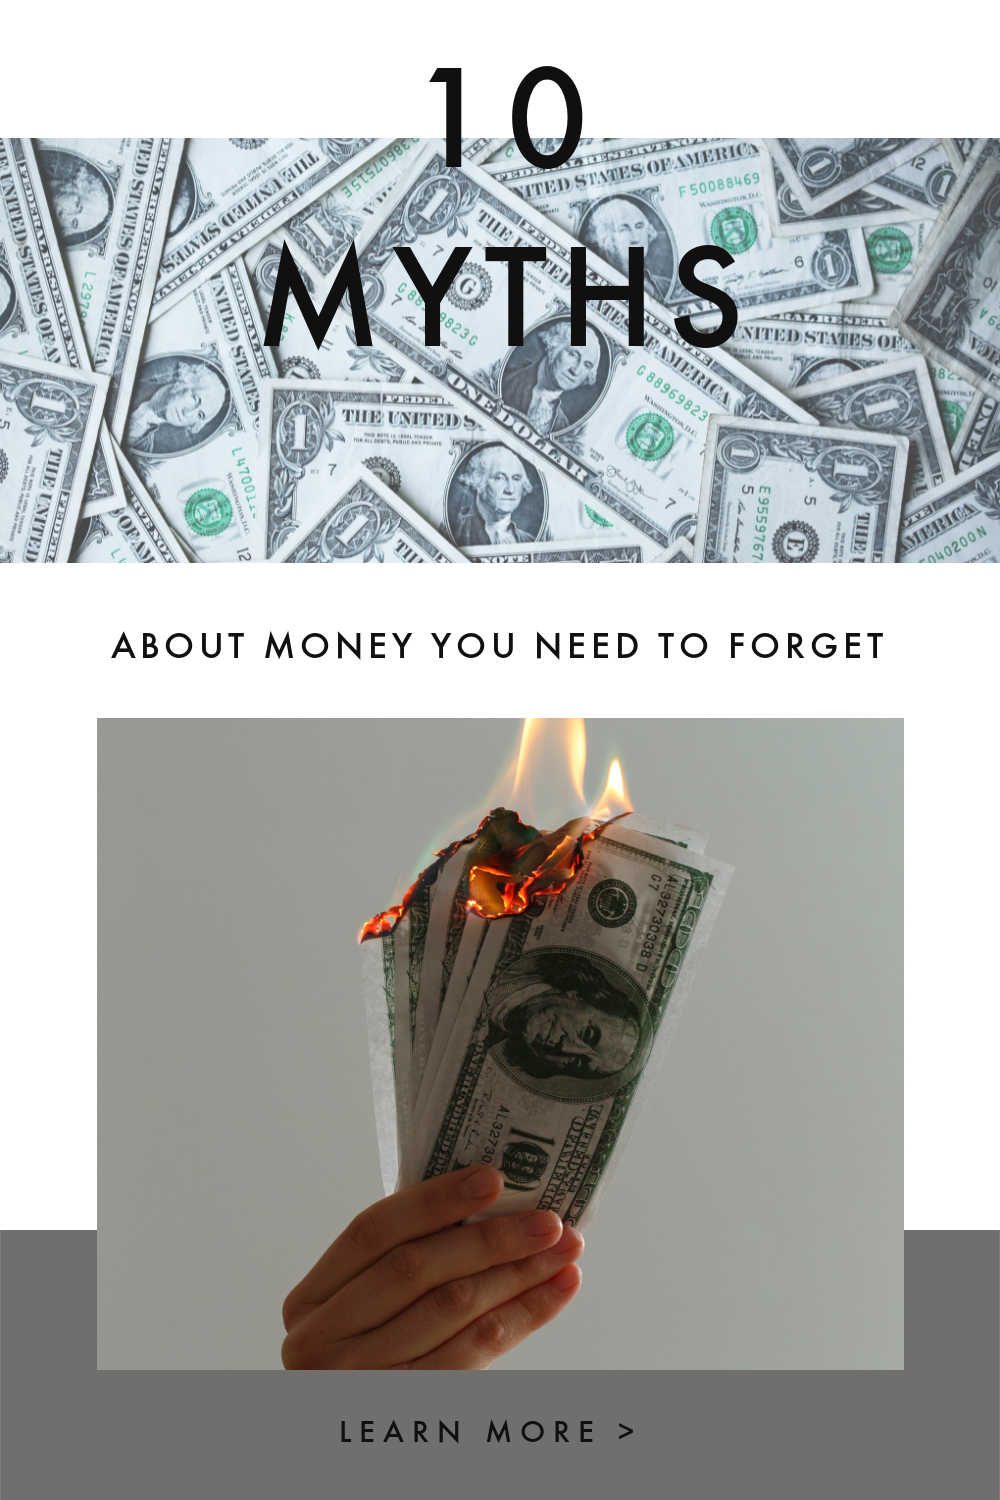 MONEY MYTHS THAT ARE KEEPING YOU BROKE